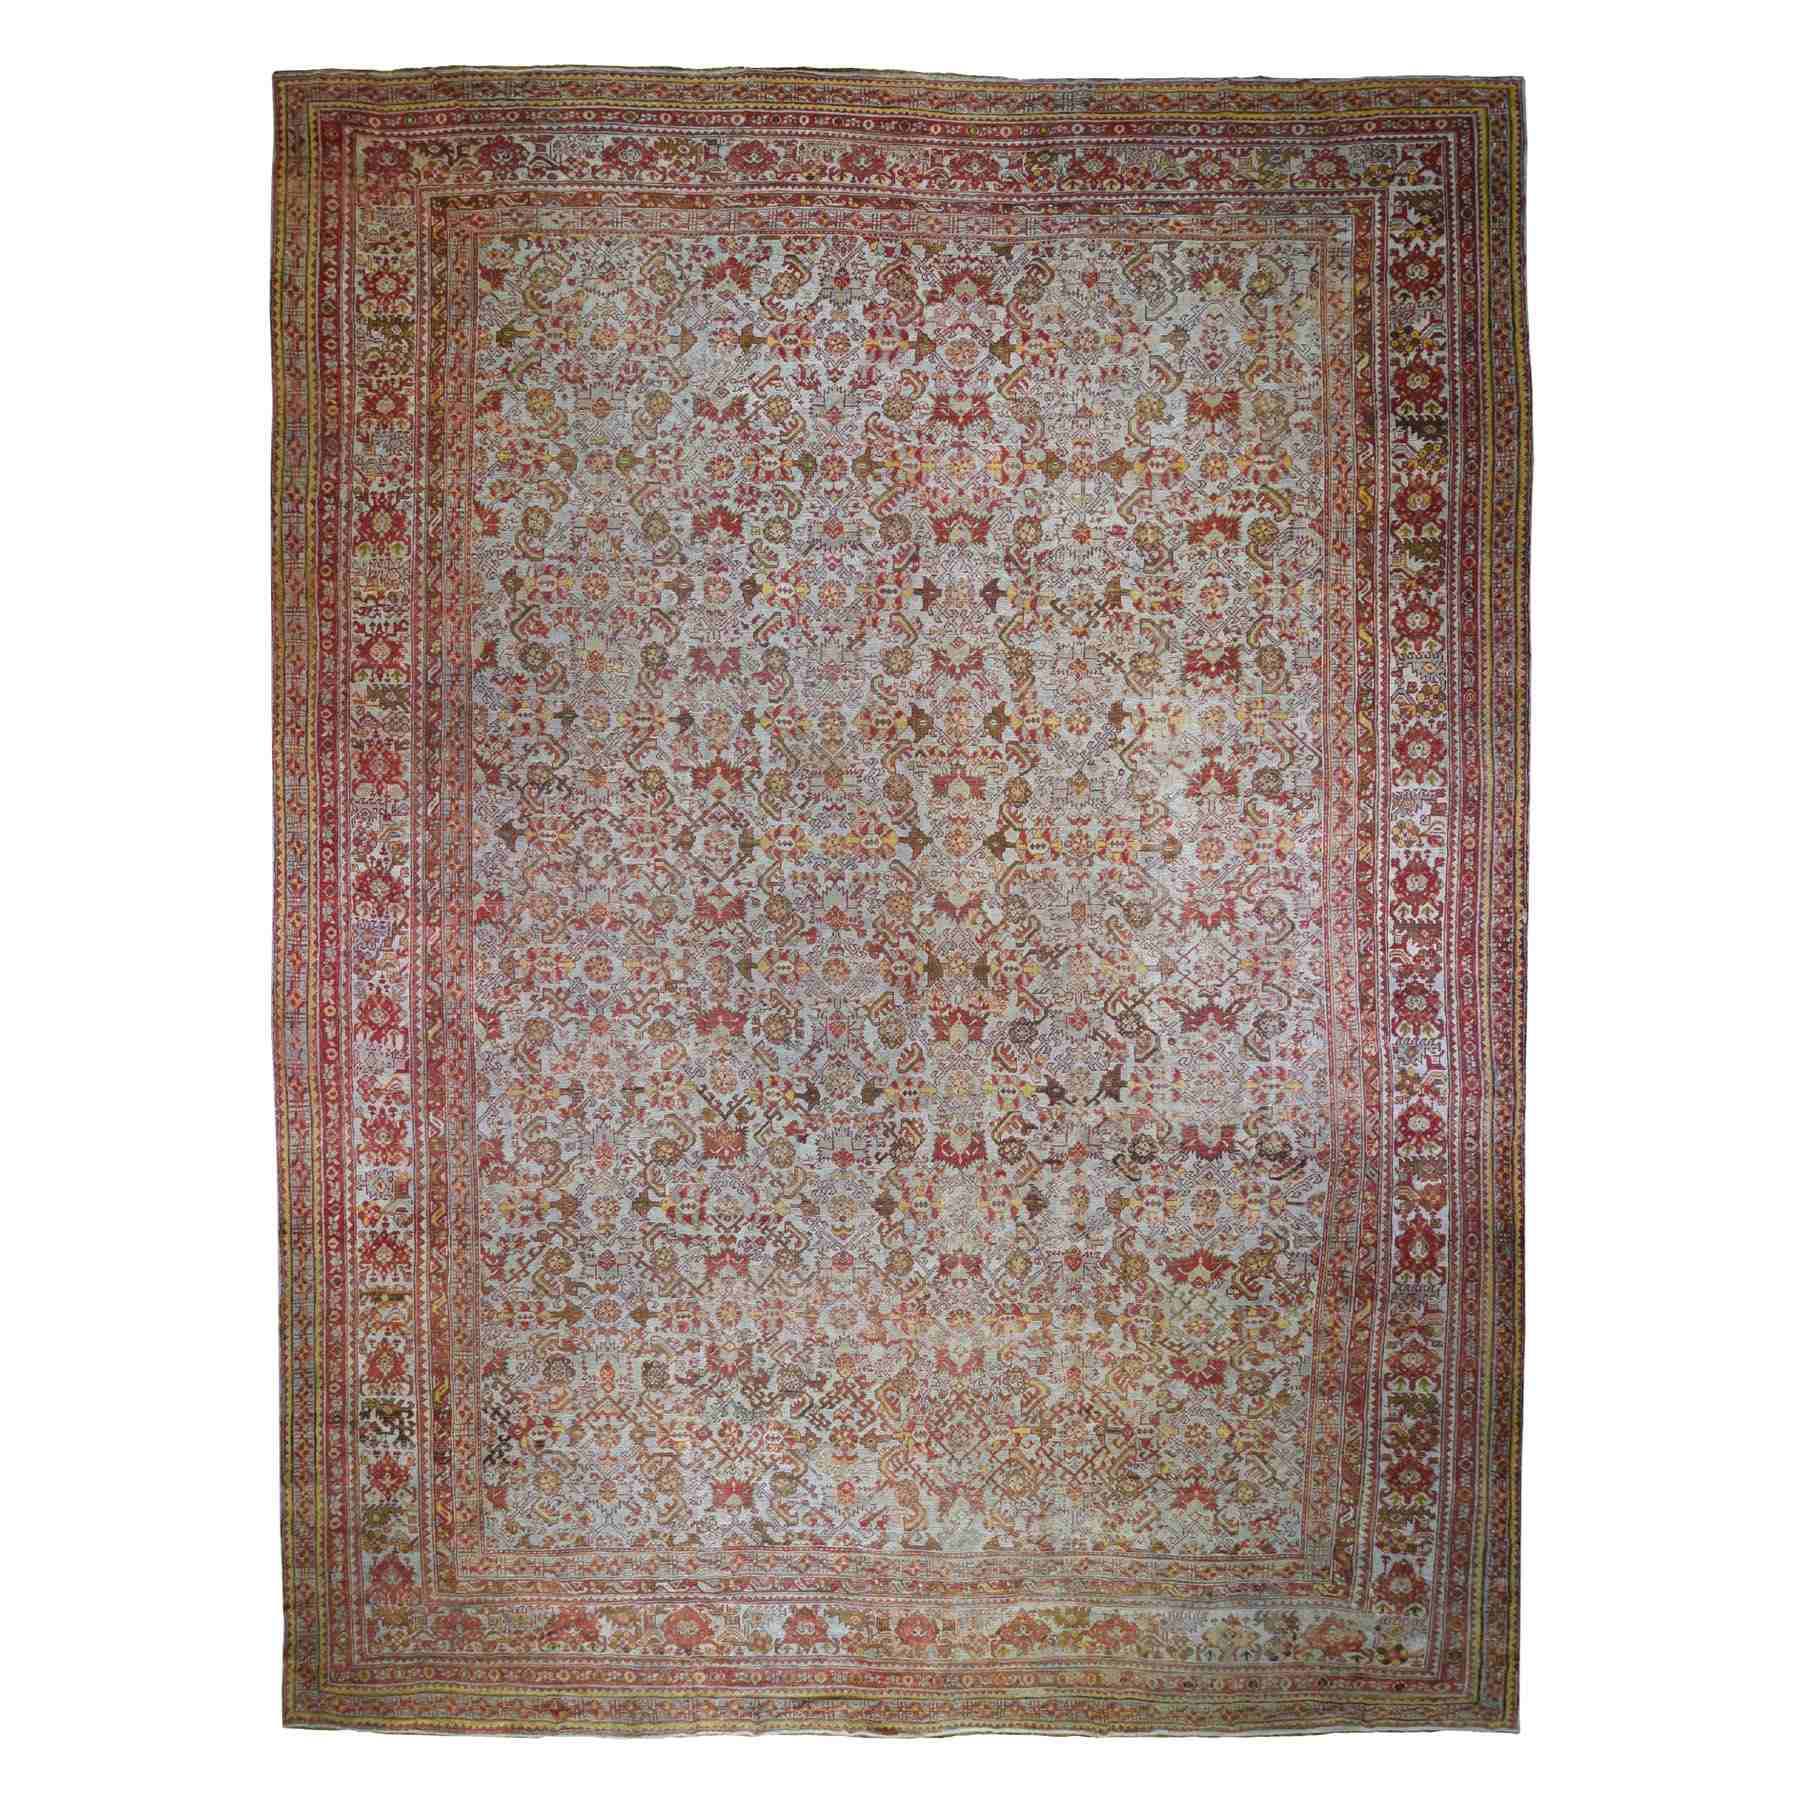 Antique-Hand-Knotted-Rug-235400